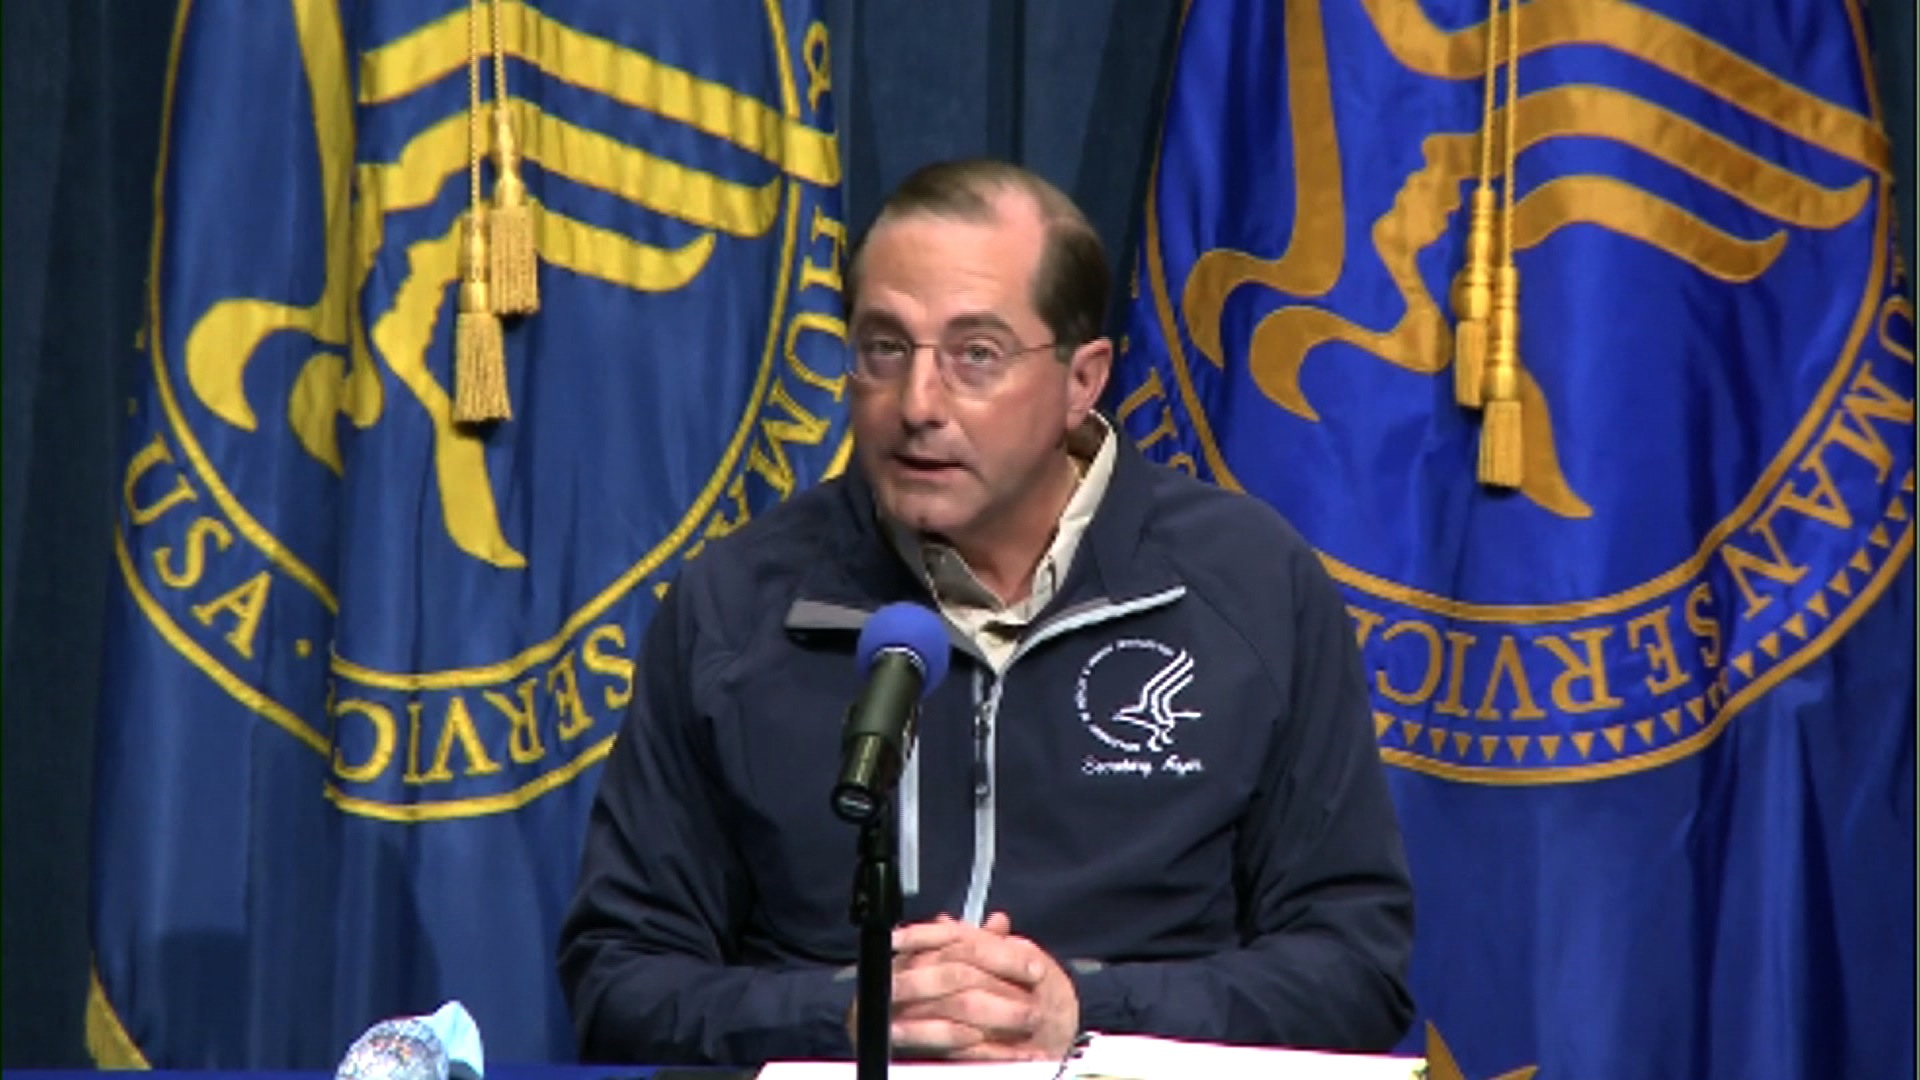 Secretary of Health and Human Services Alex Azar speaks during a press briefing on December 14.